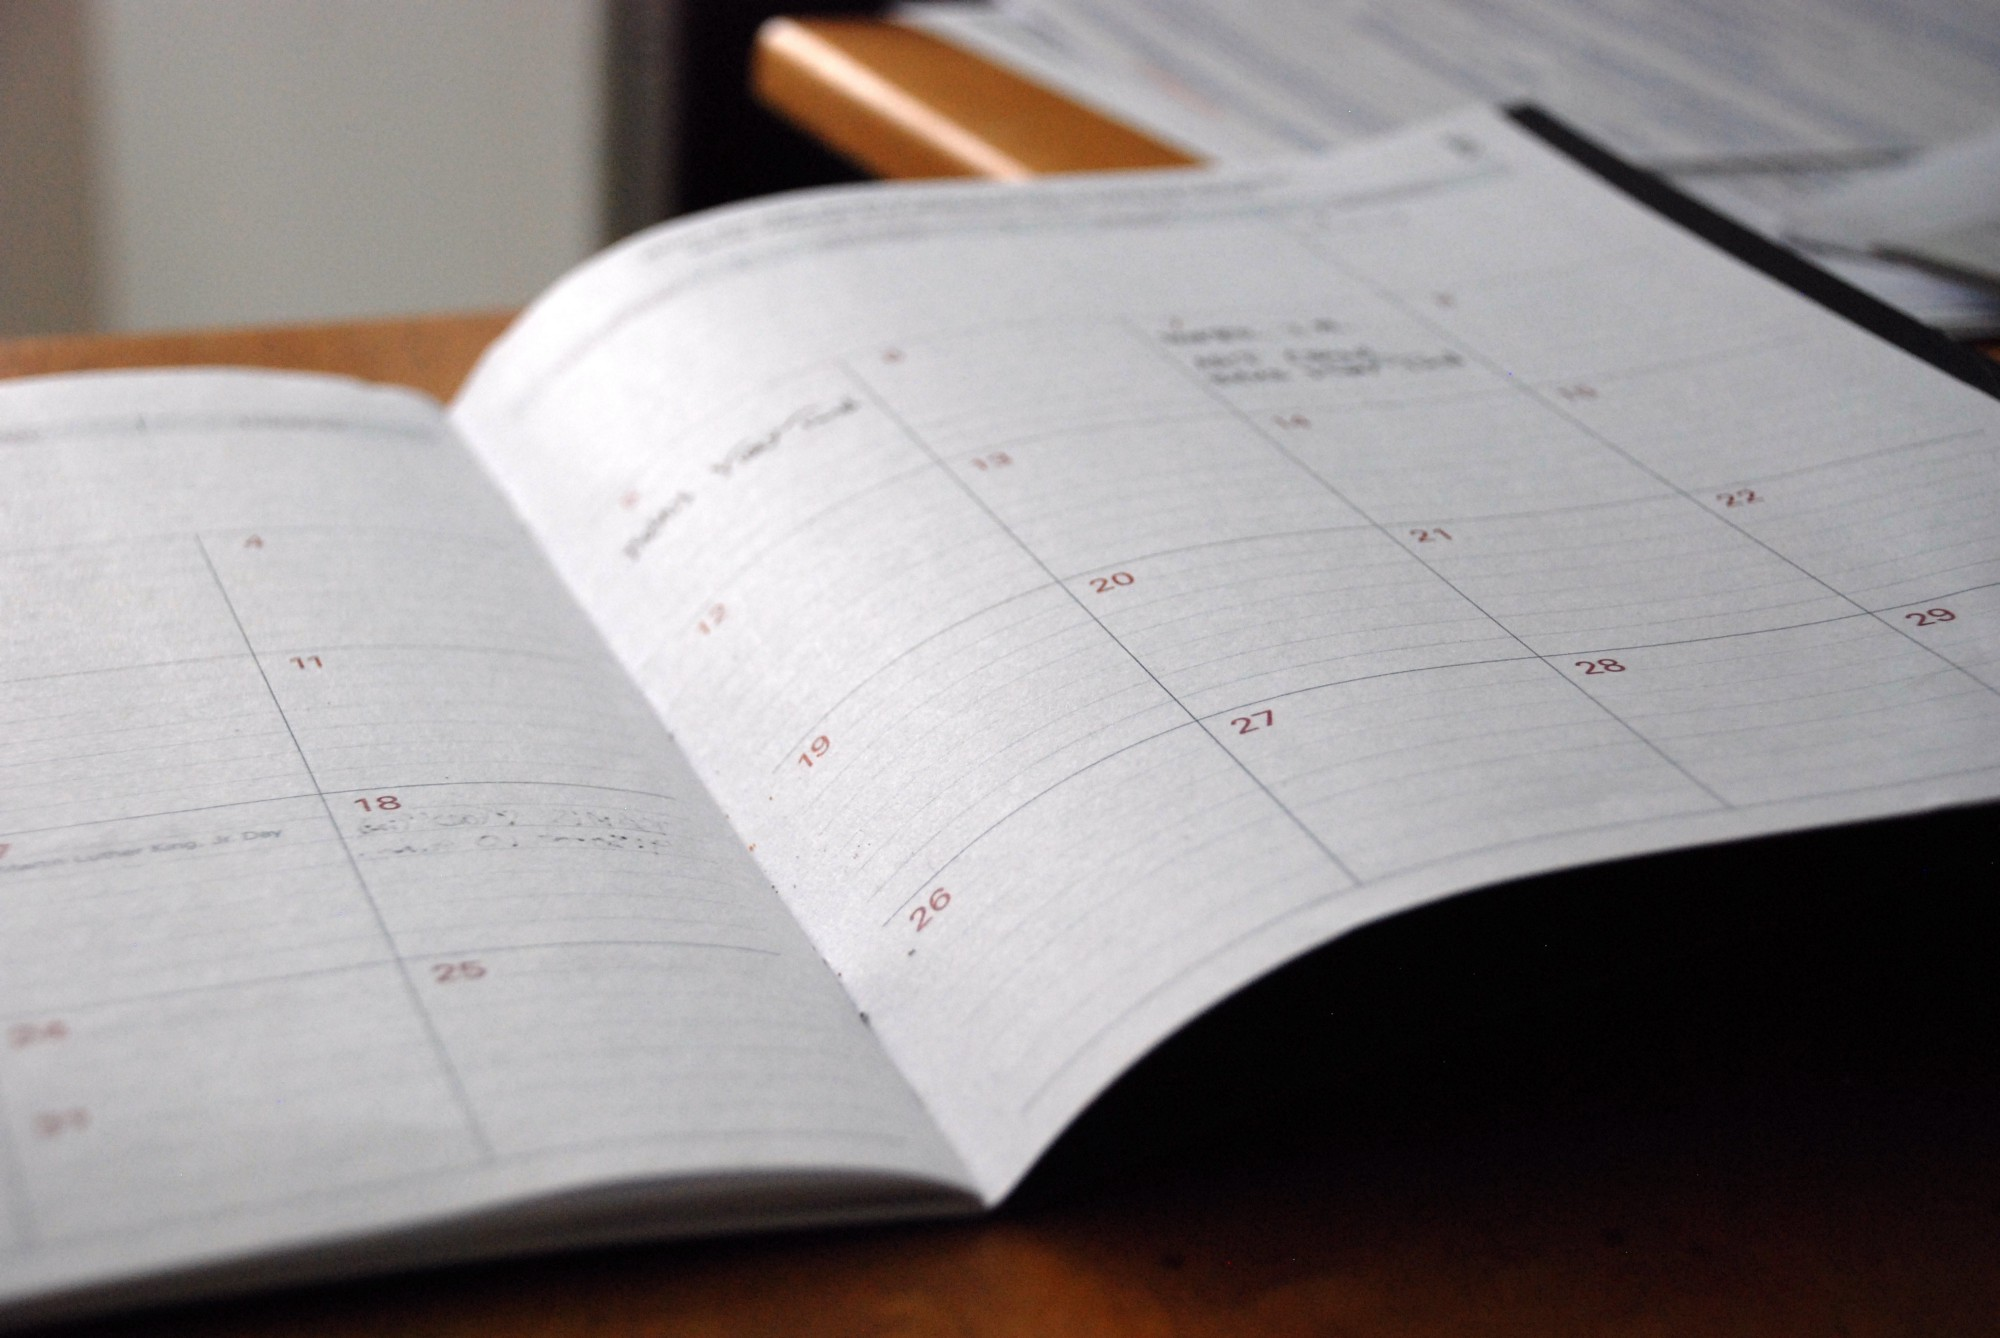 The Secret to Mastering Your Time is to Systematically Focus on Importance And Suppress Urgency